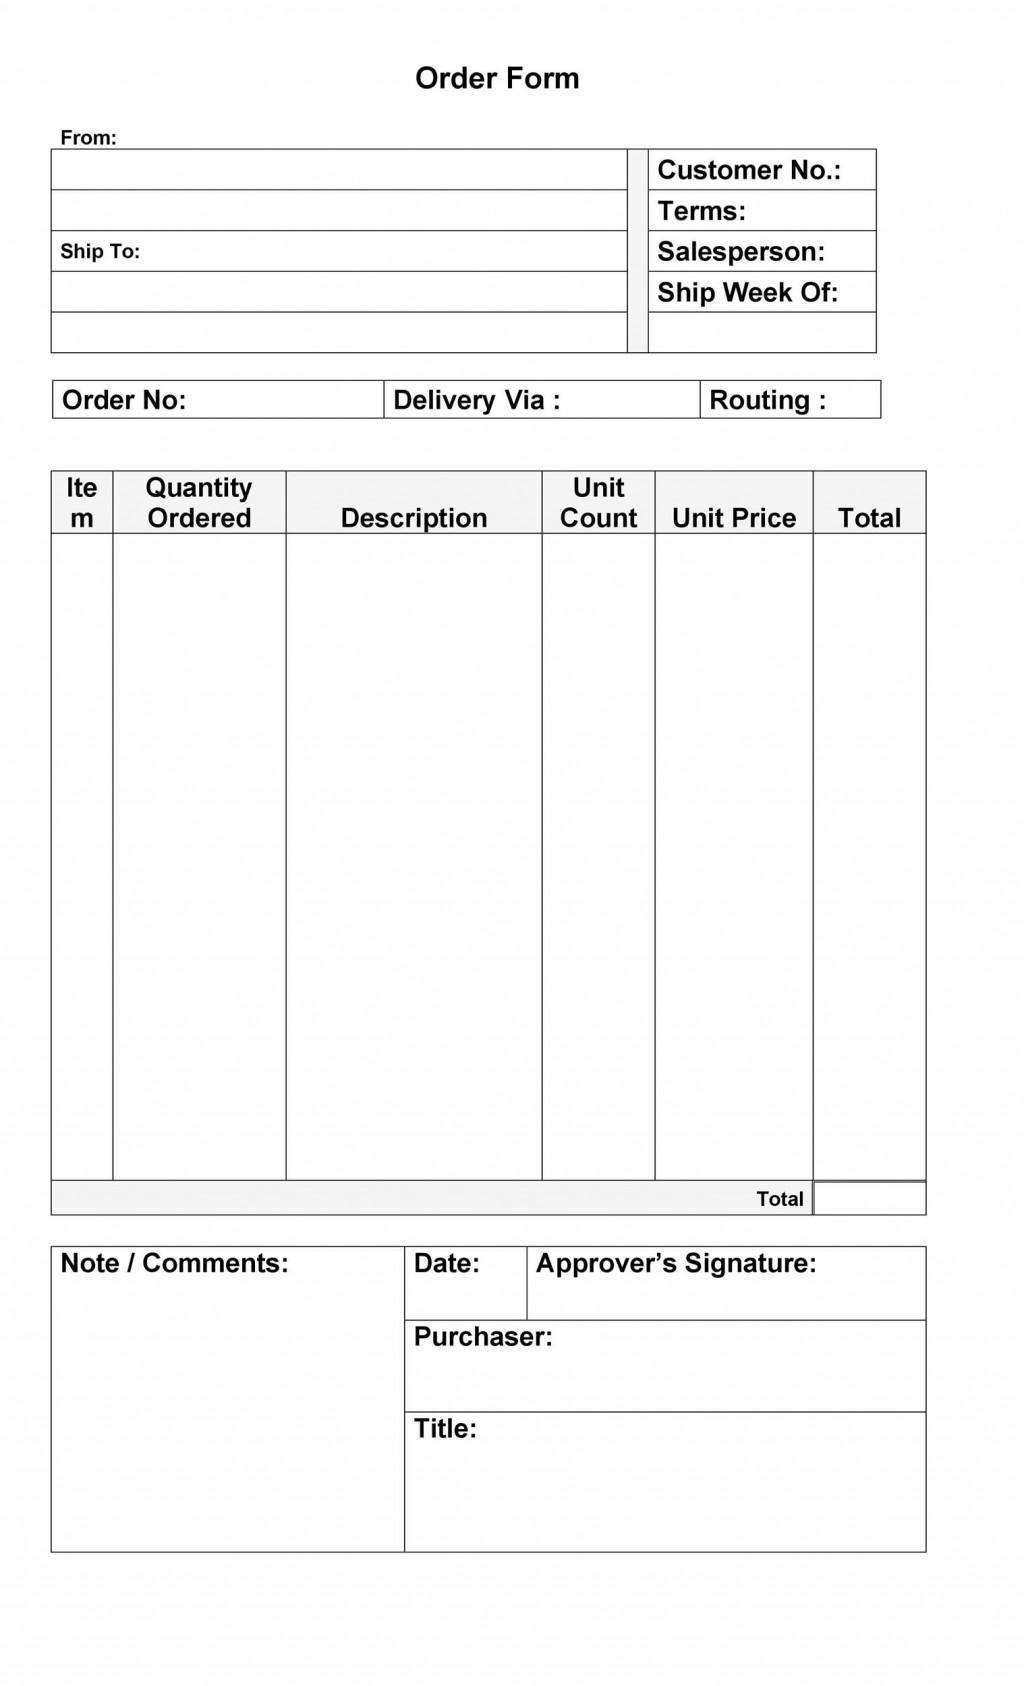 008 Simple Order Form Template Free Design  Application Shirt Word CustomLarge